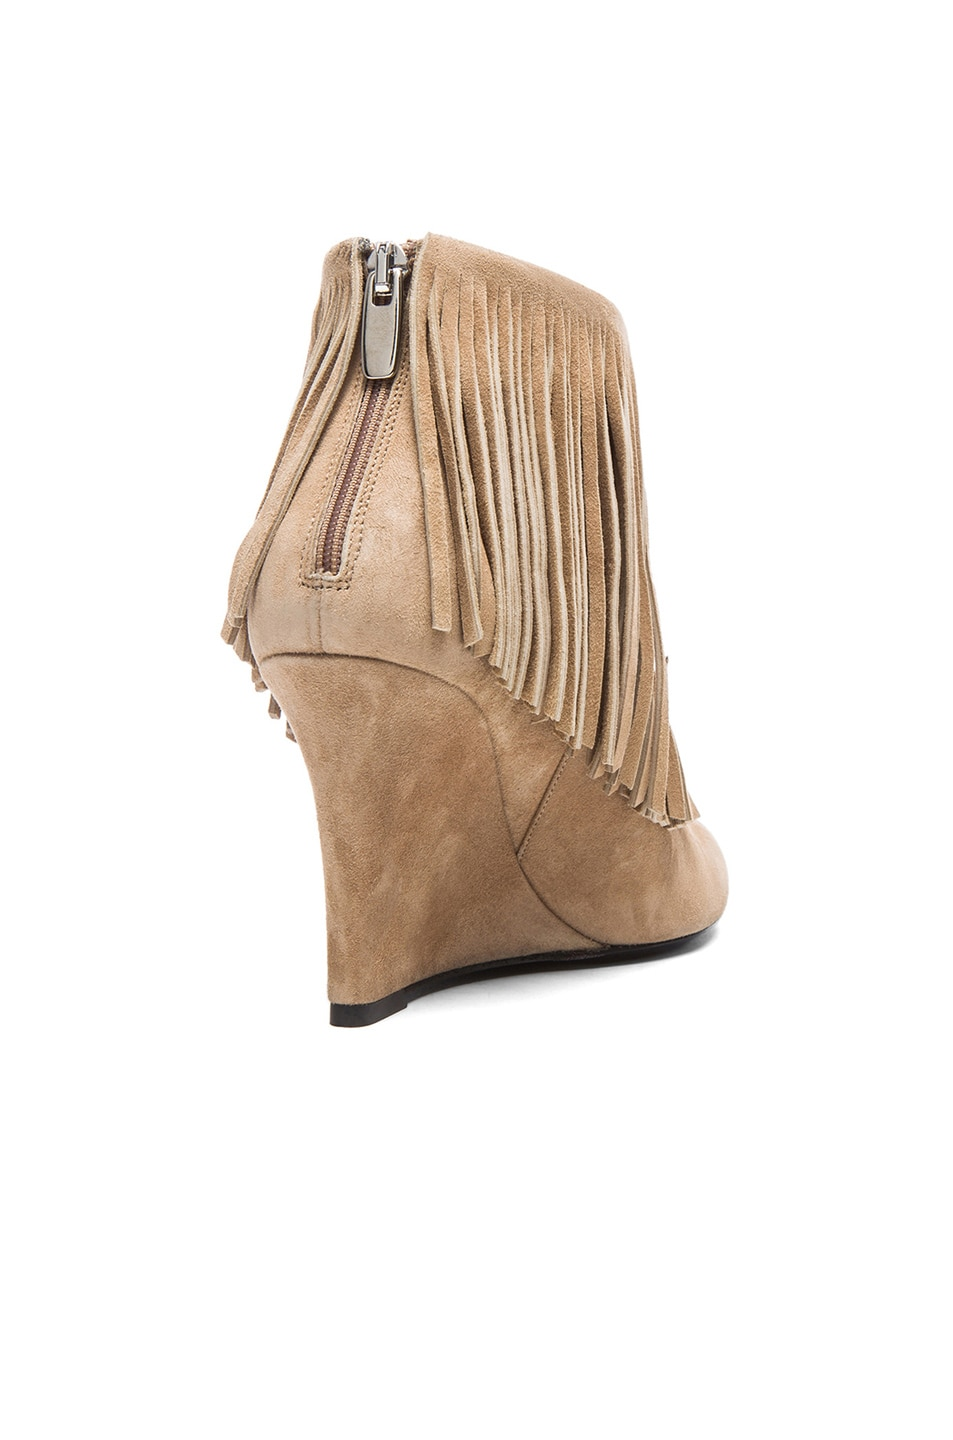 Image 3 of elysewalker los angeles Suede Fringe Booties in Taupe